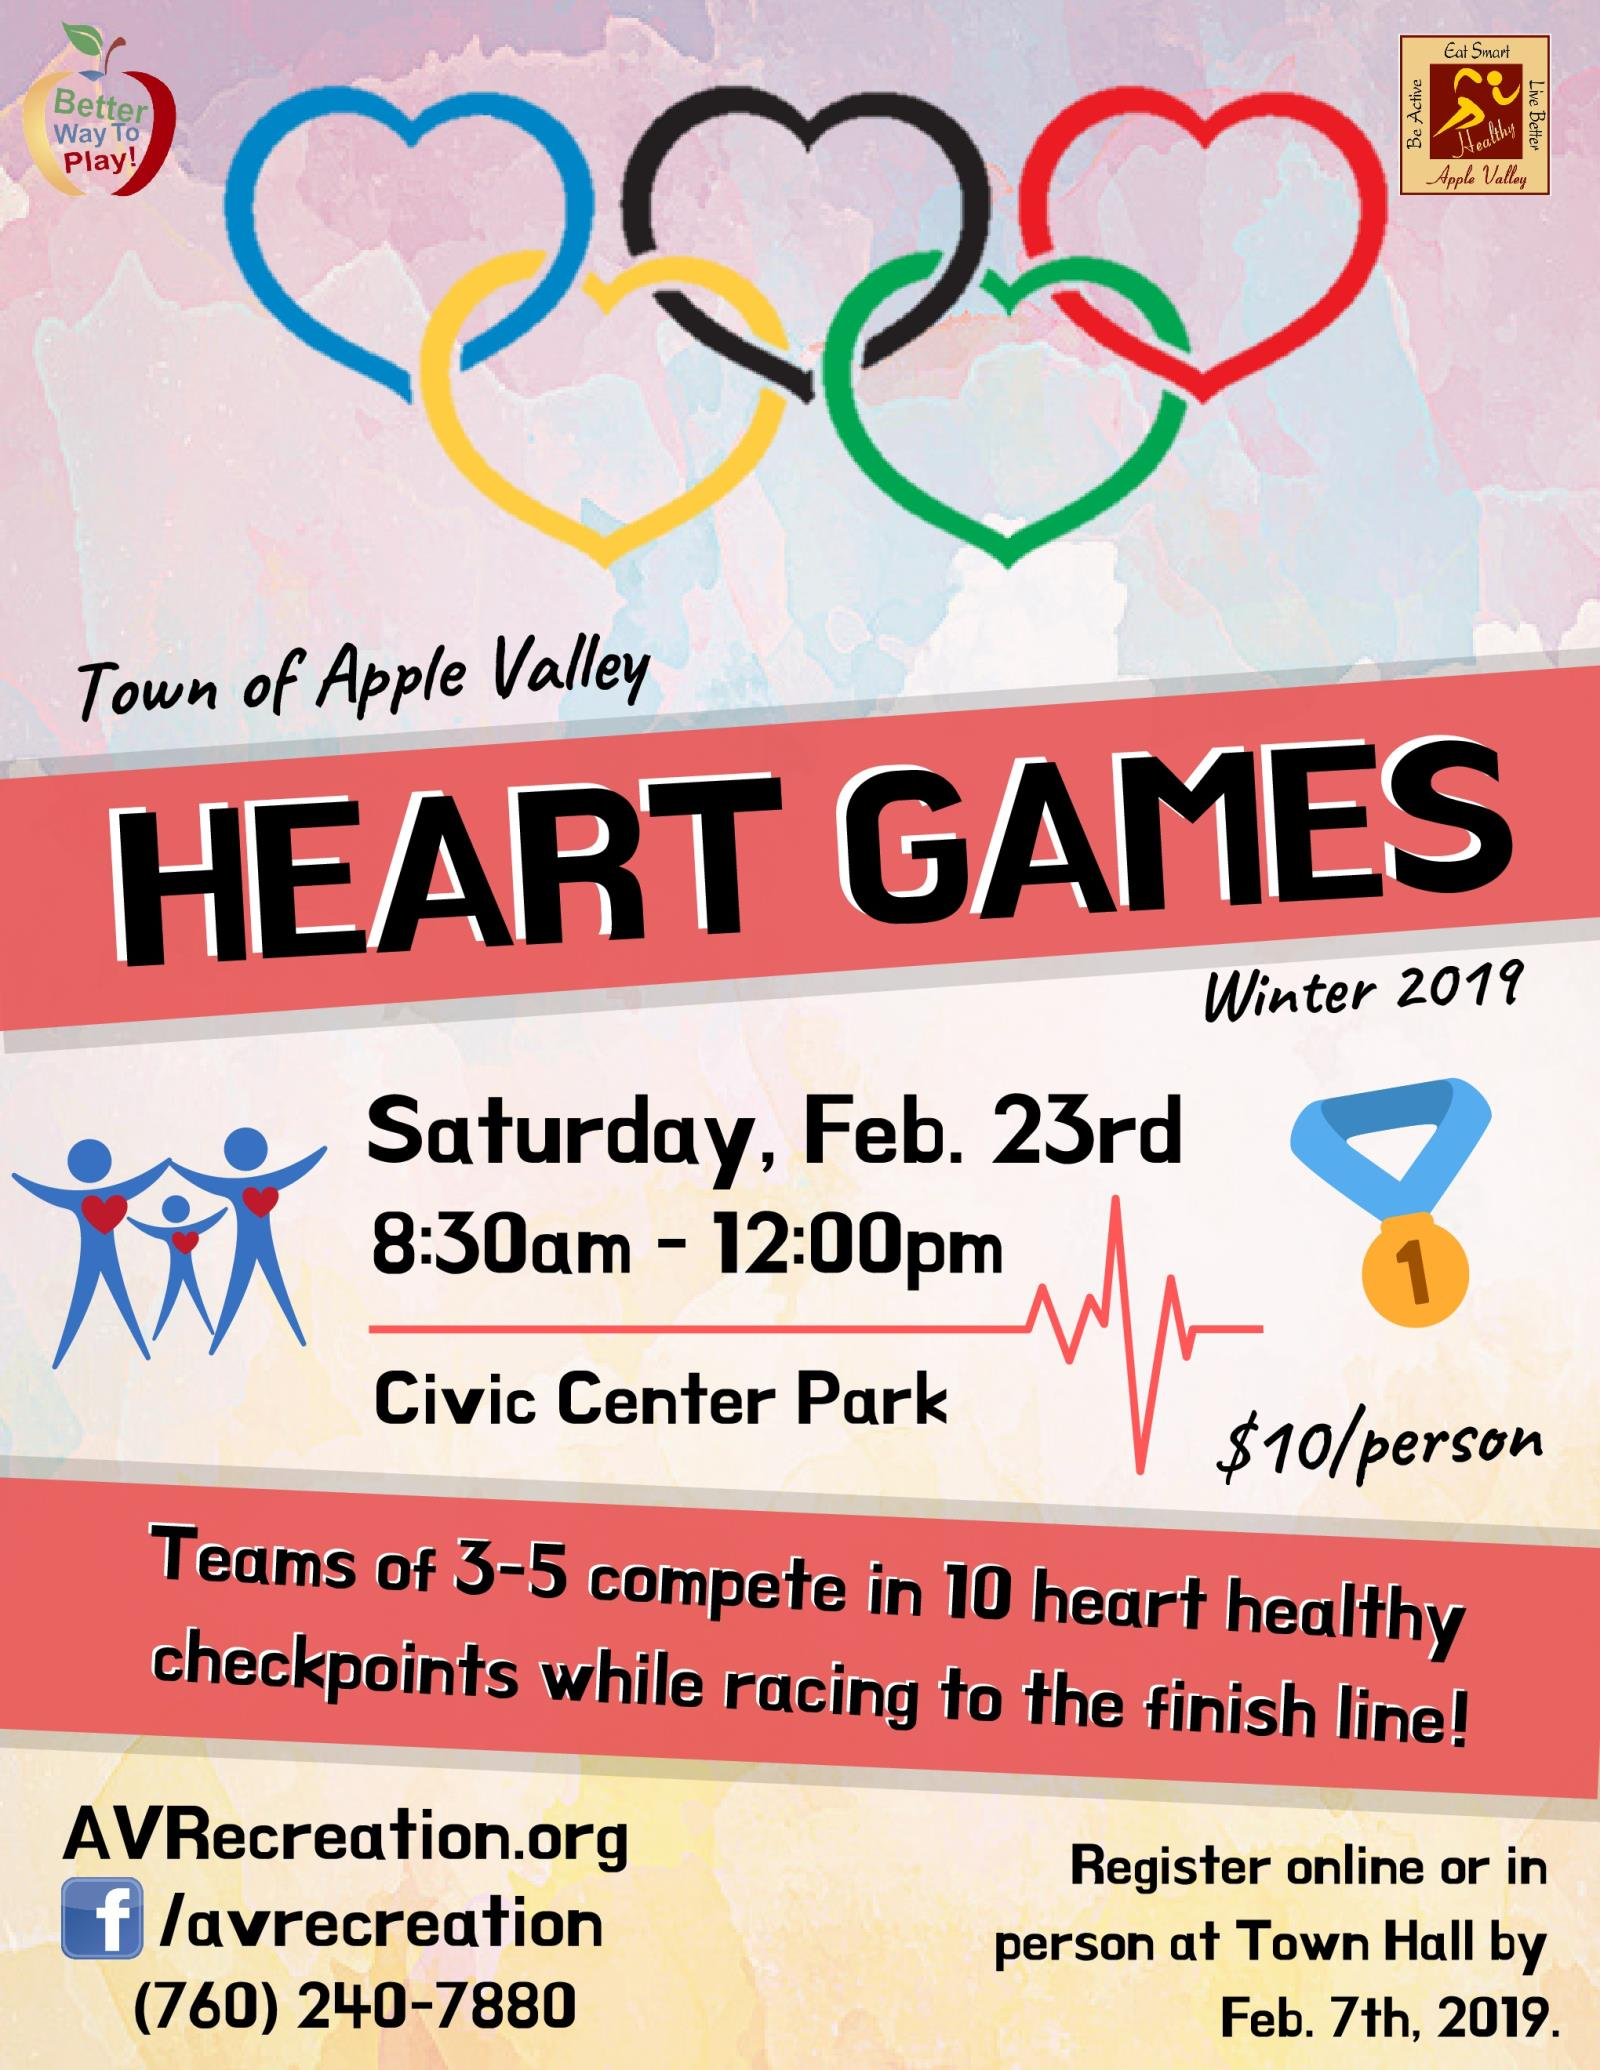 Heart Games Flyer